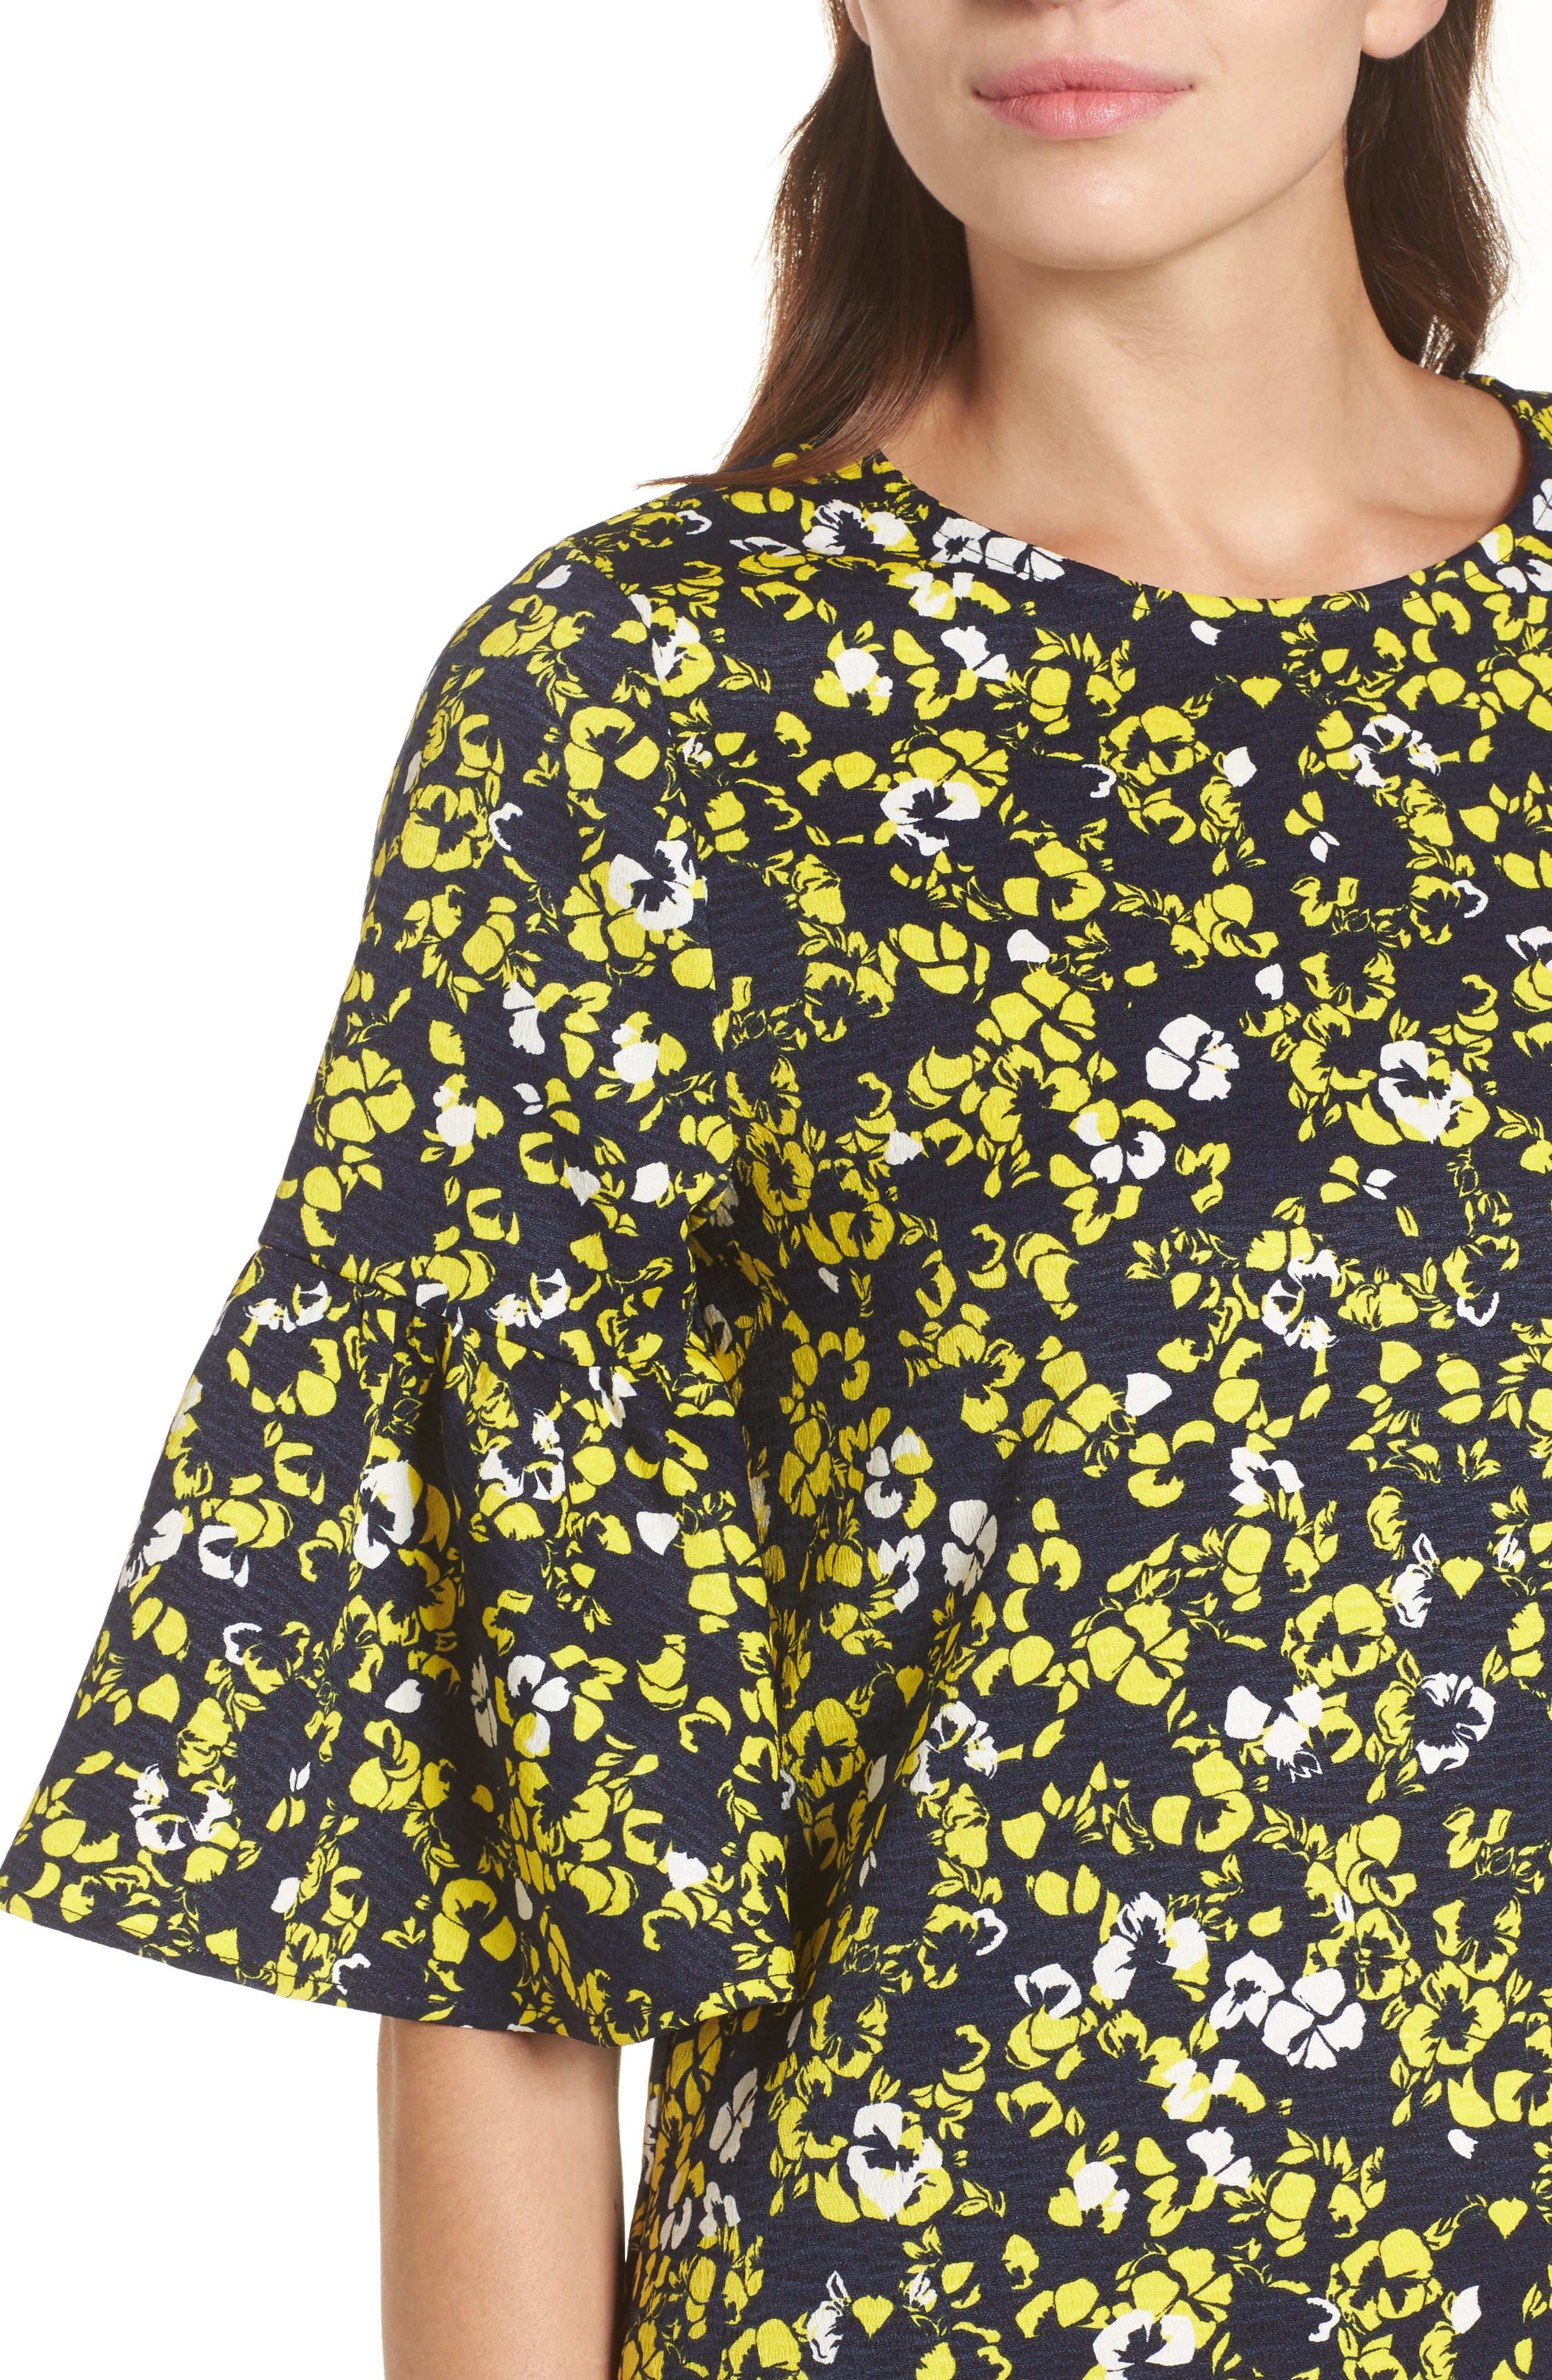 Ruffle Sleeve Shift Dress,                             Alternate thumbnail 4, color,                             Navy- Yellow Floral